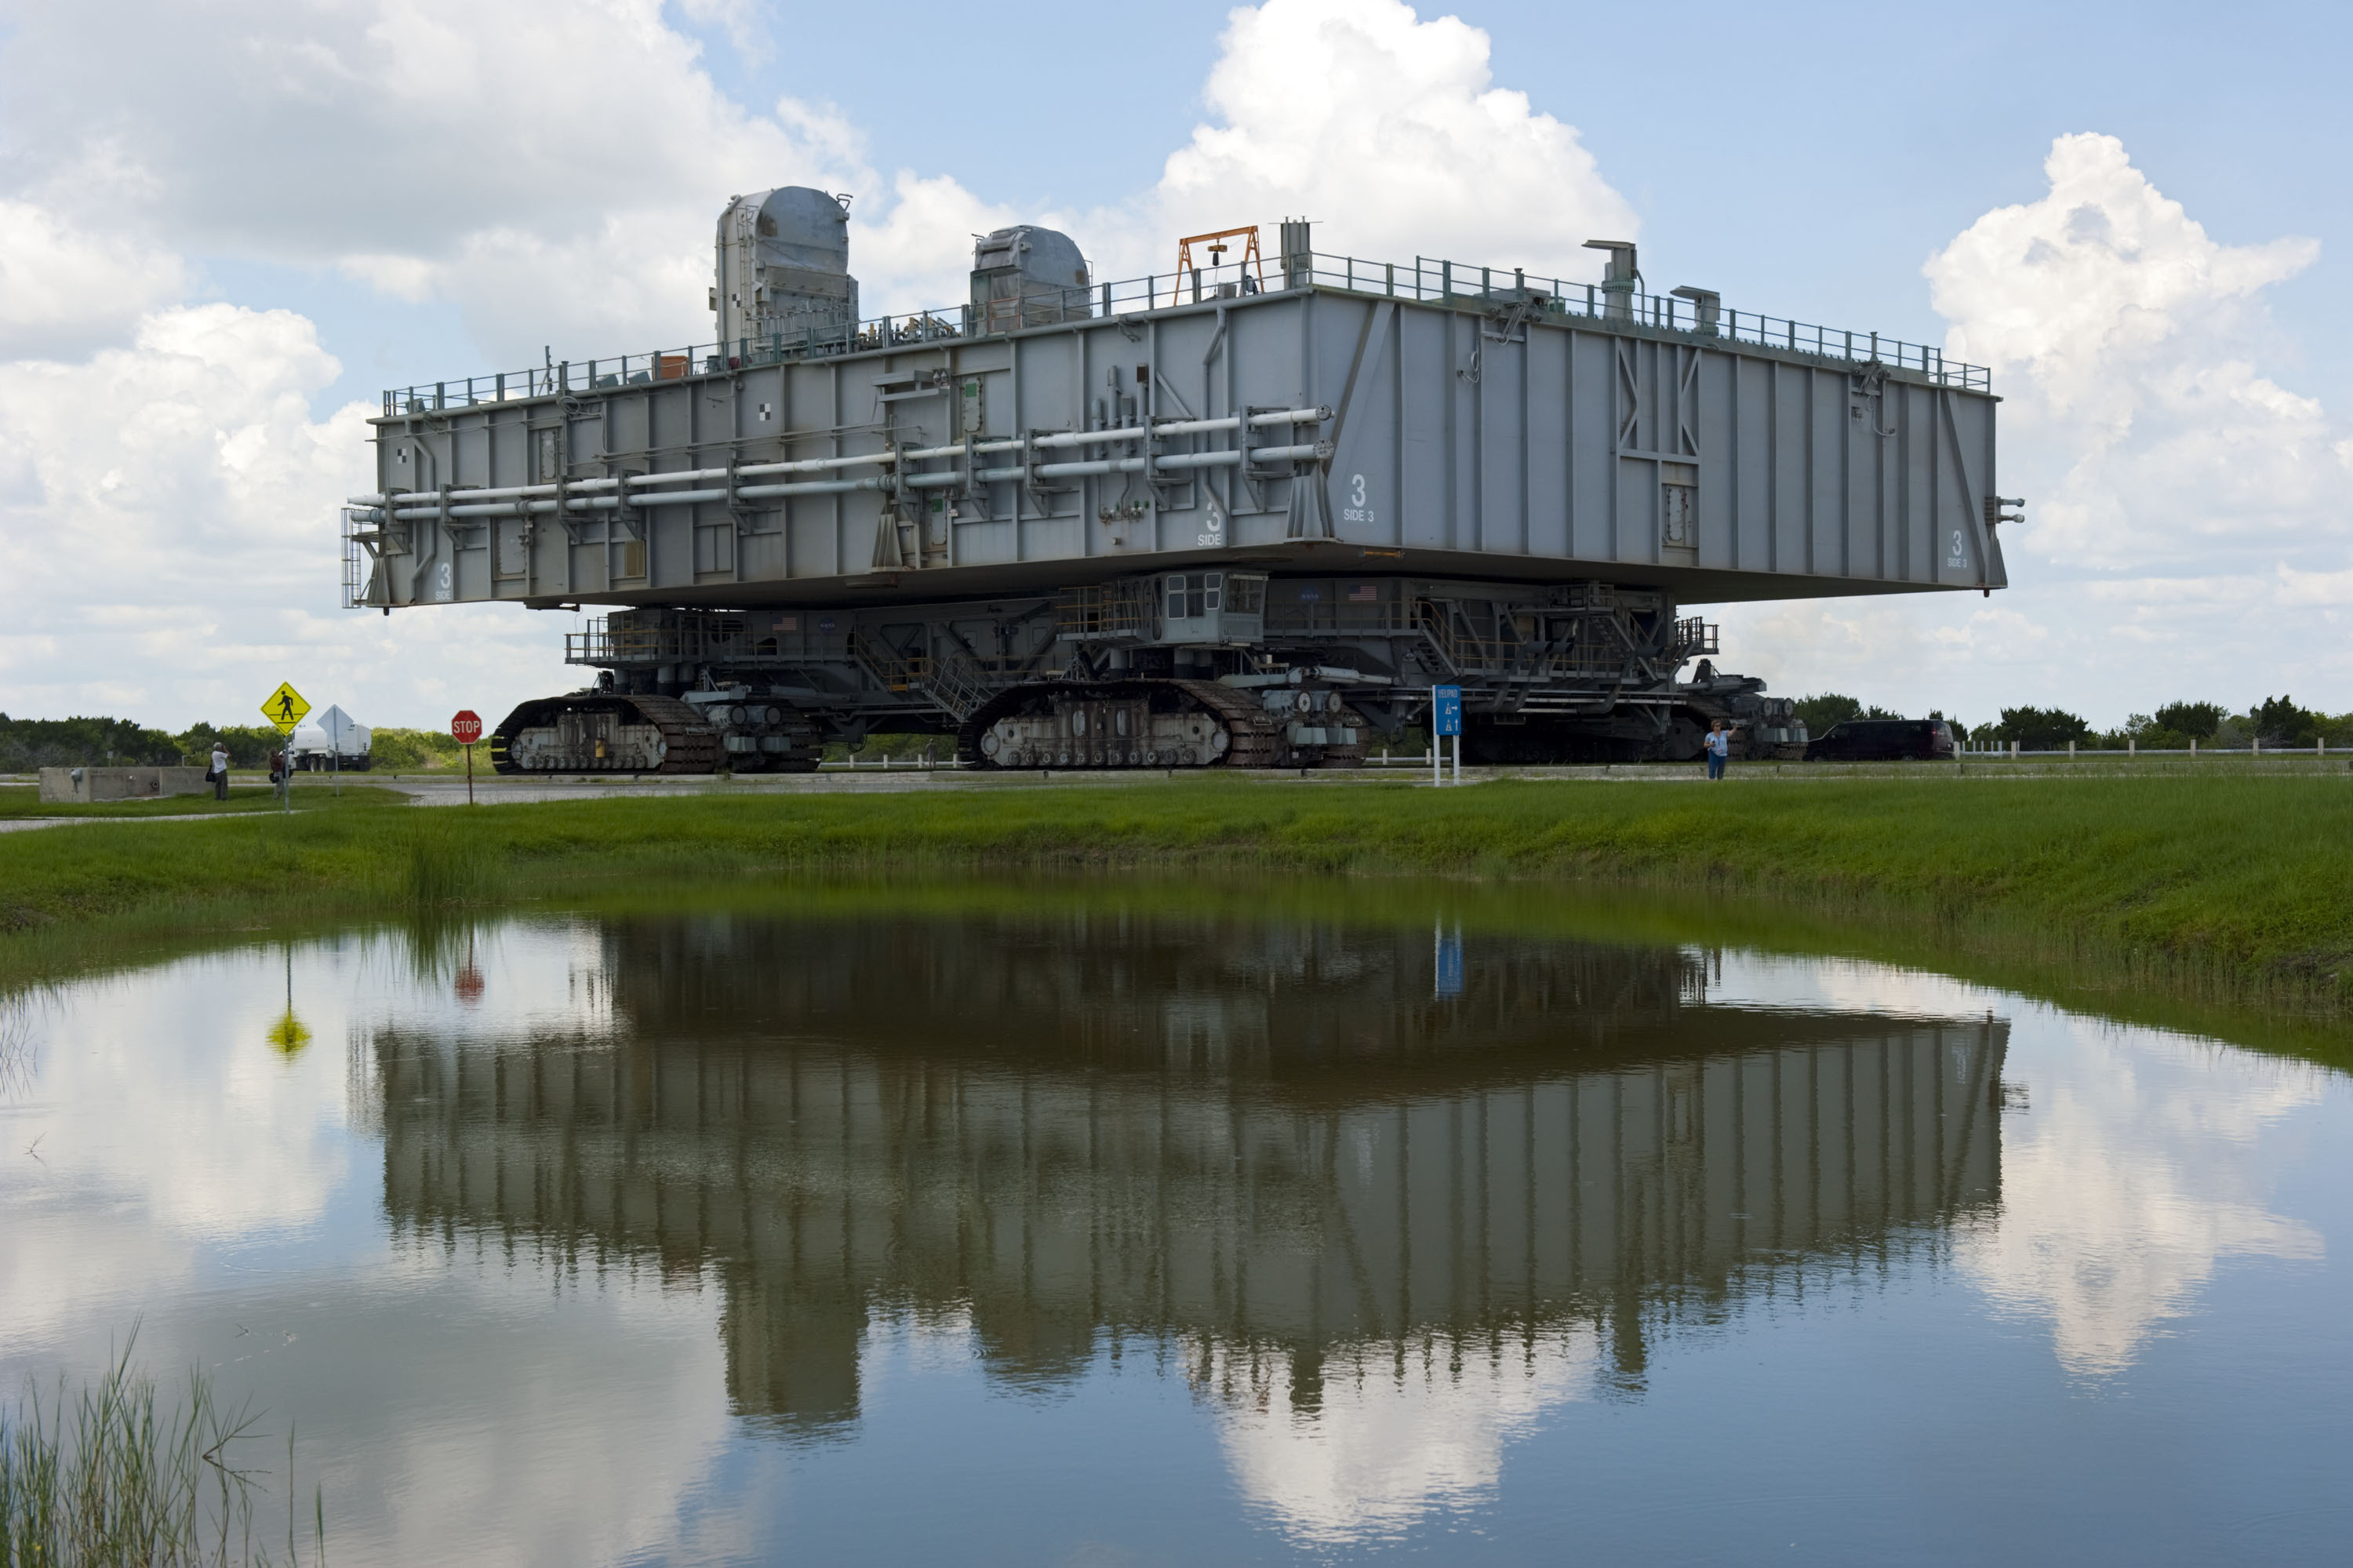 NASA - Mobile Launcher Platforms Prepped for New Generation